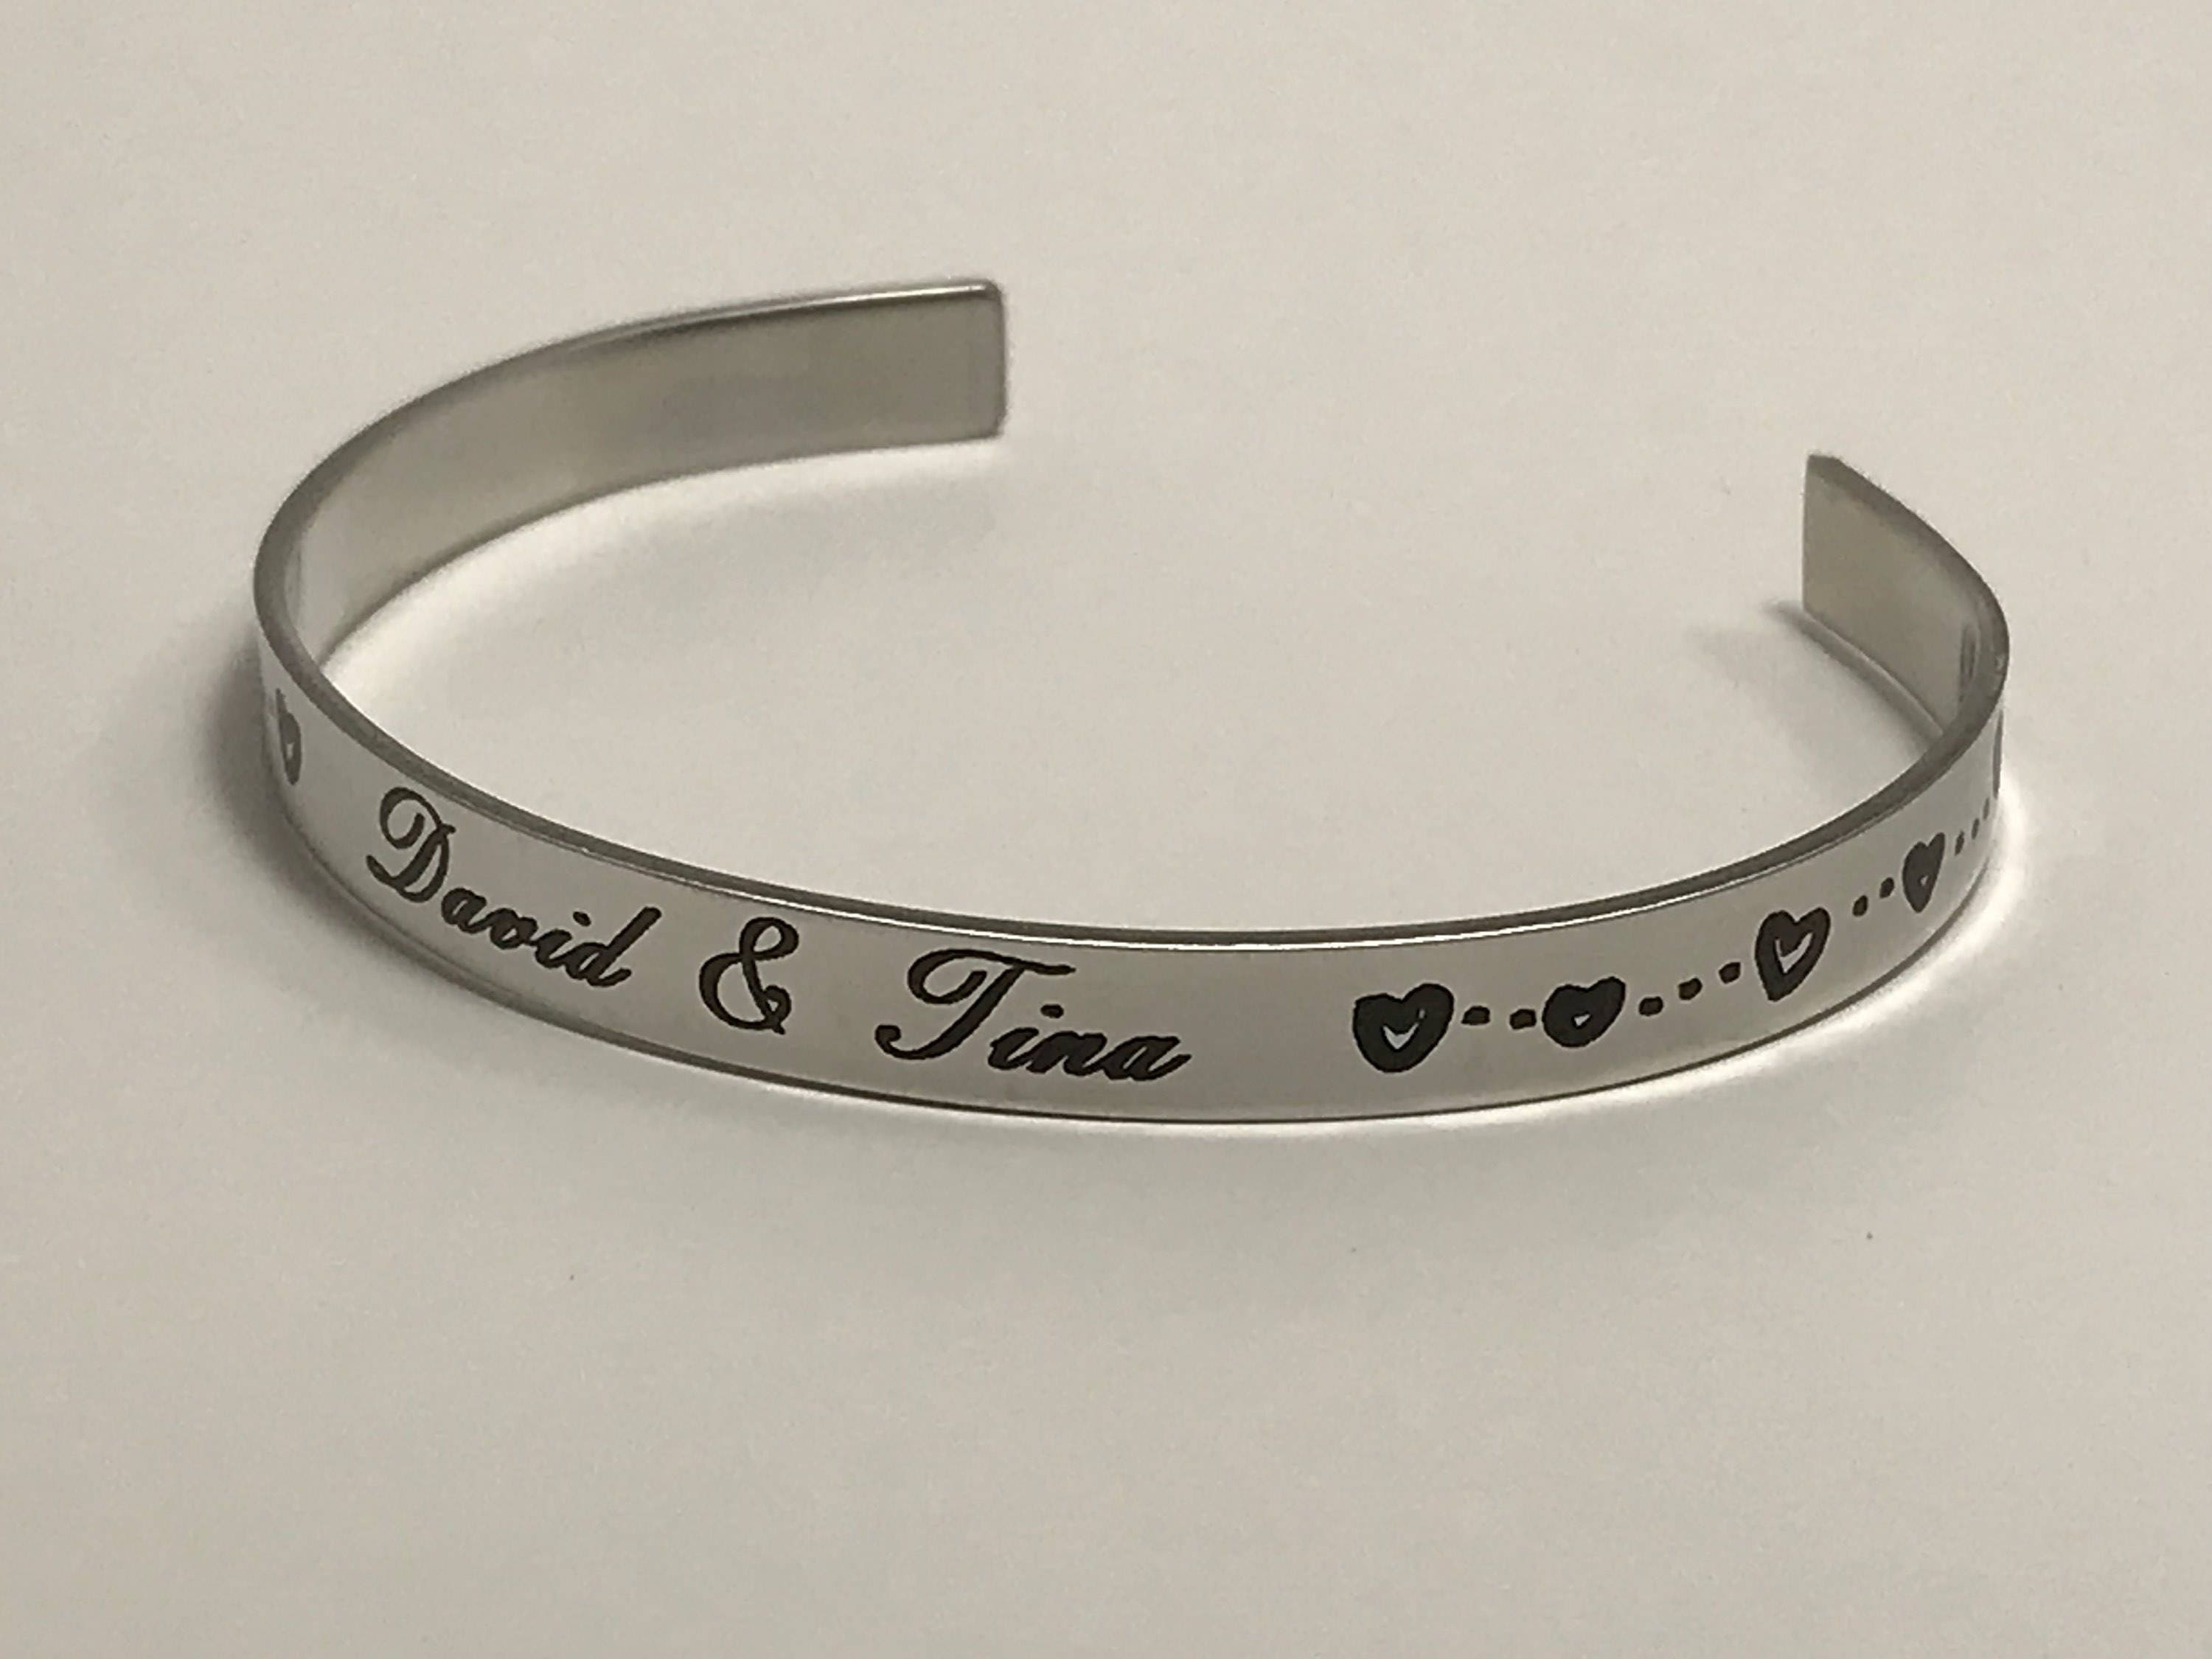 triple bangle name stamped bangles silver bracelet mothers bracelets intertwined intertwining personalized loading zoom